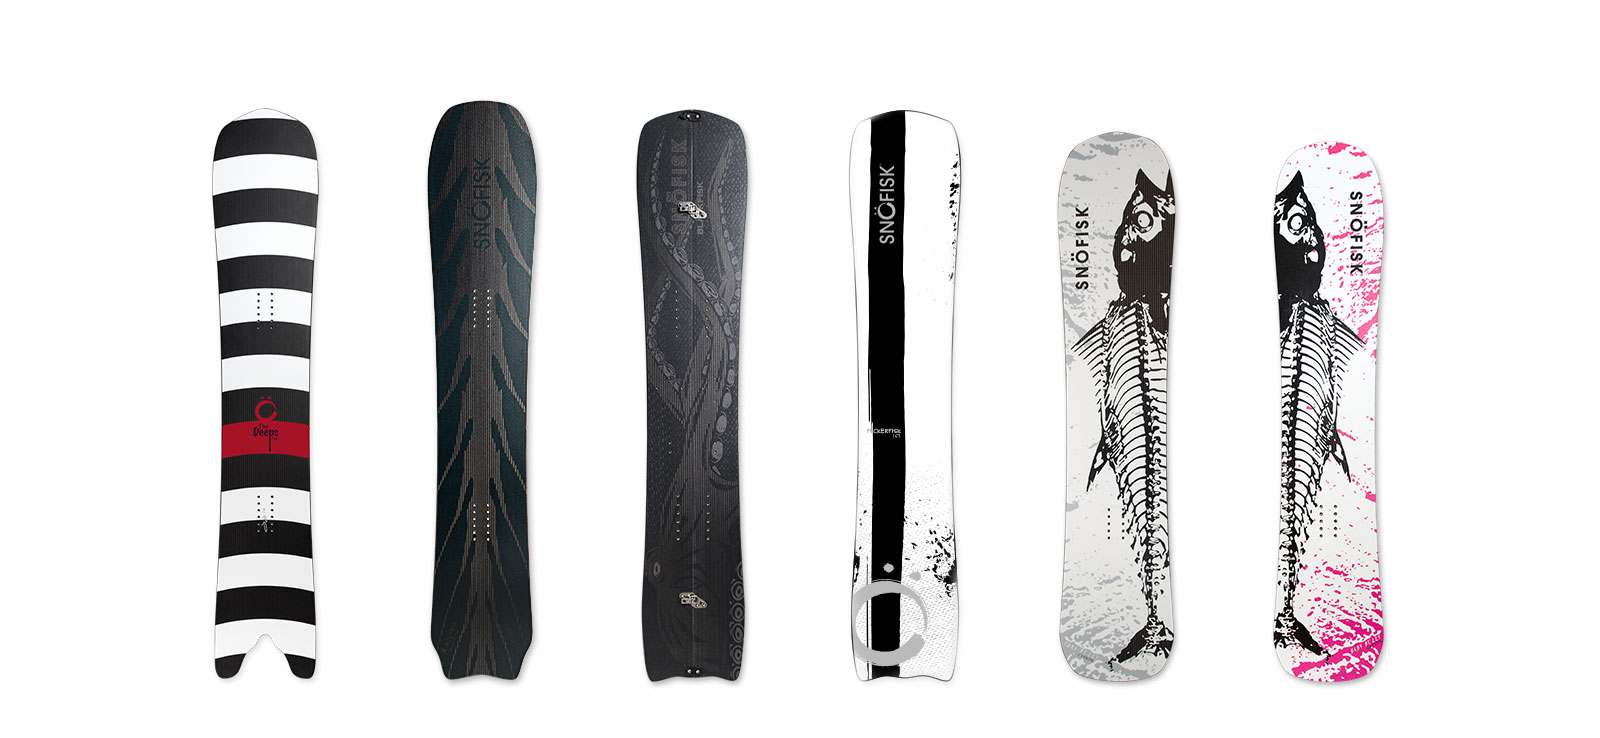 Snöfisk 2018 carbon fiber snowboards for all mountain and powder riding